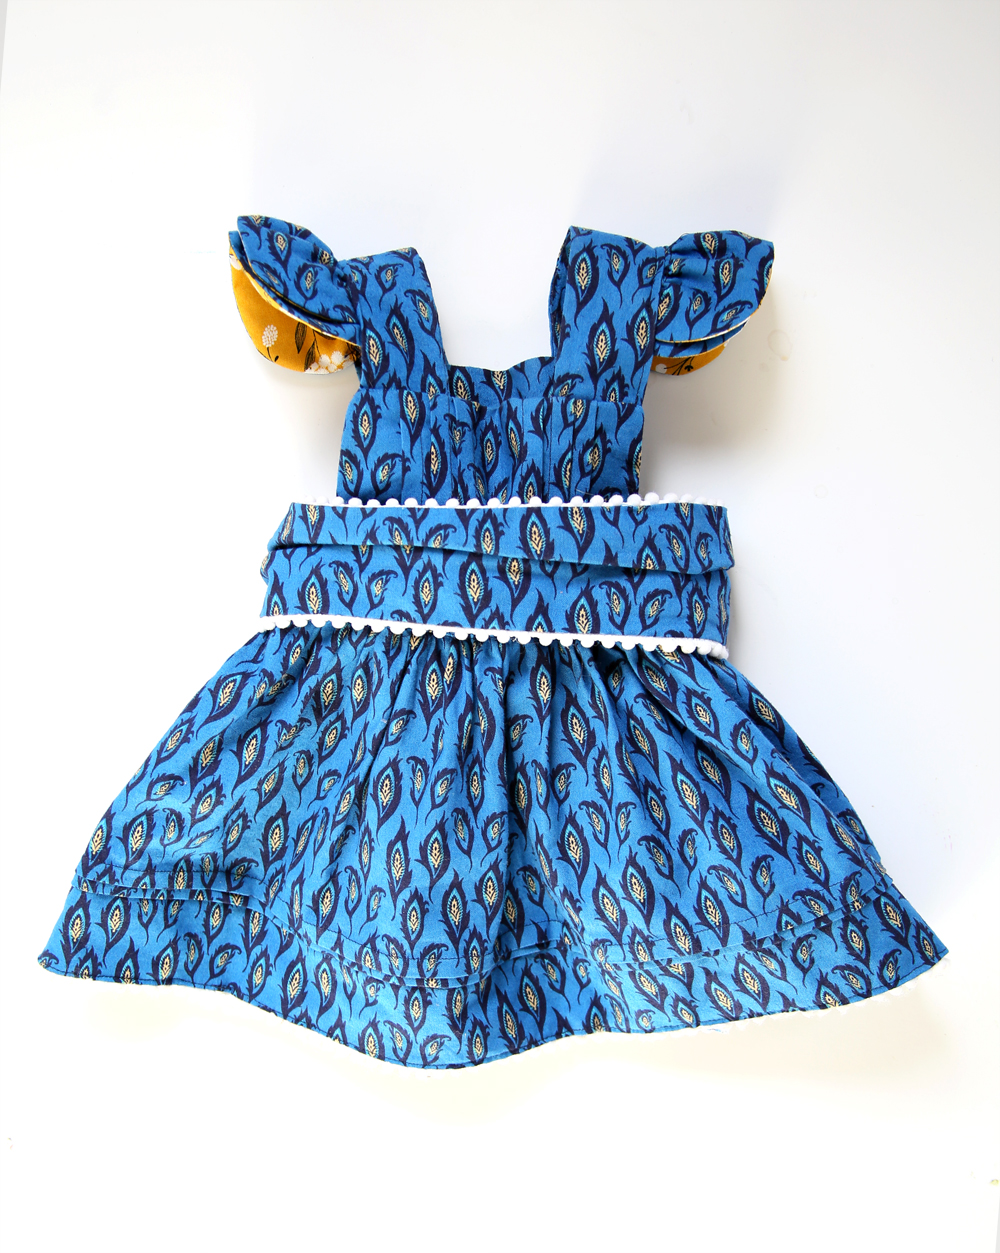 Blue Paisley Dress by Jessica Quirk